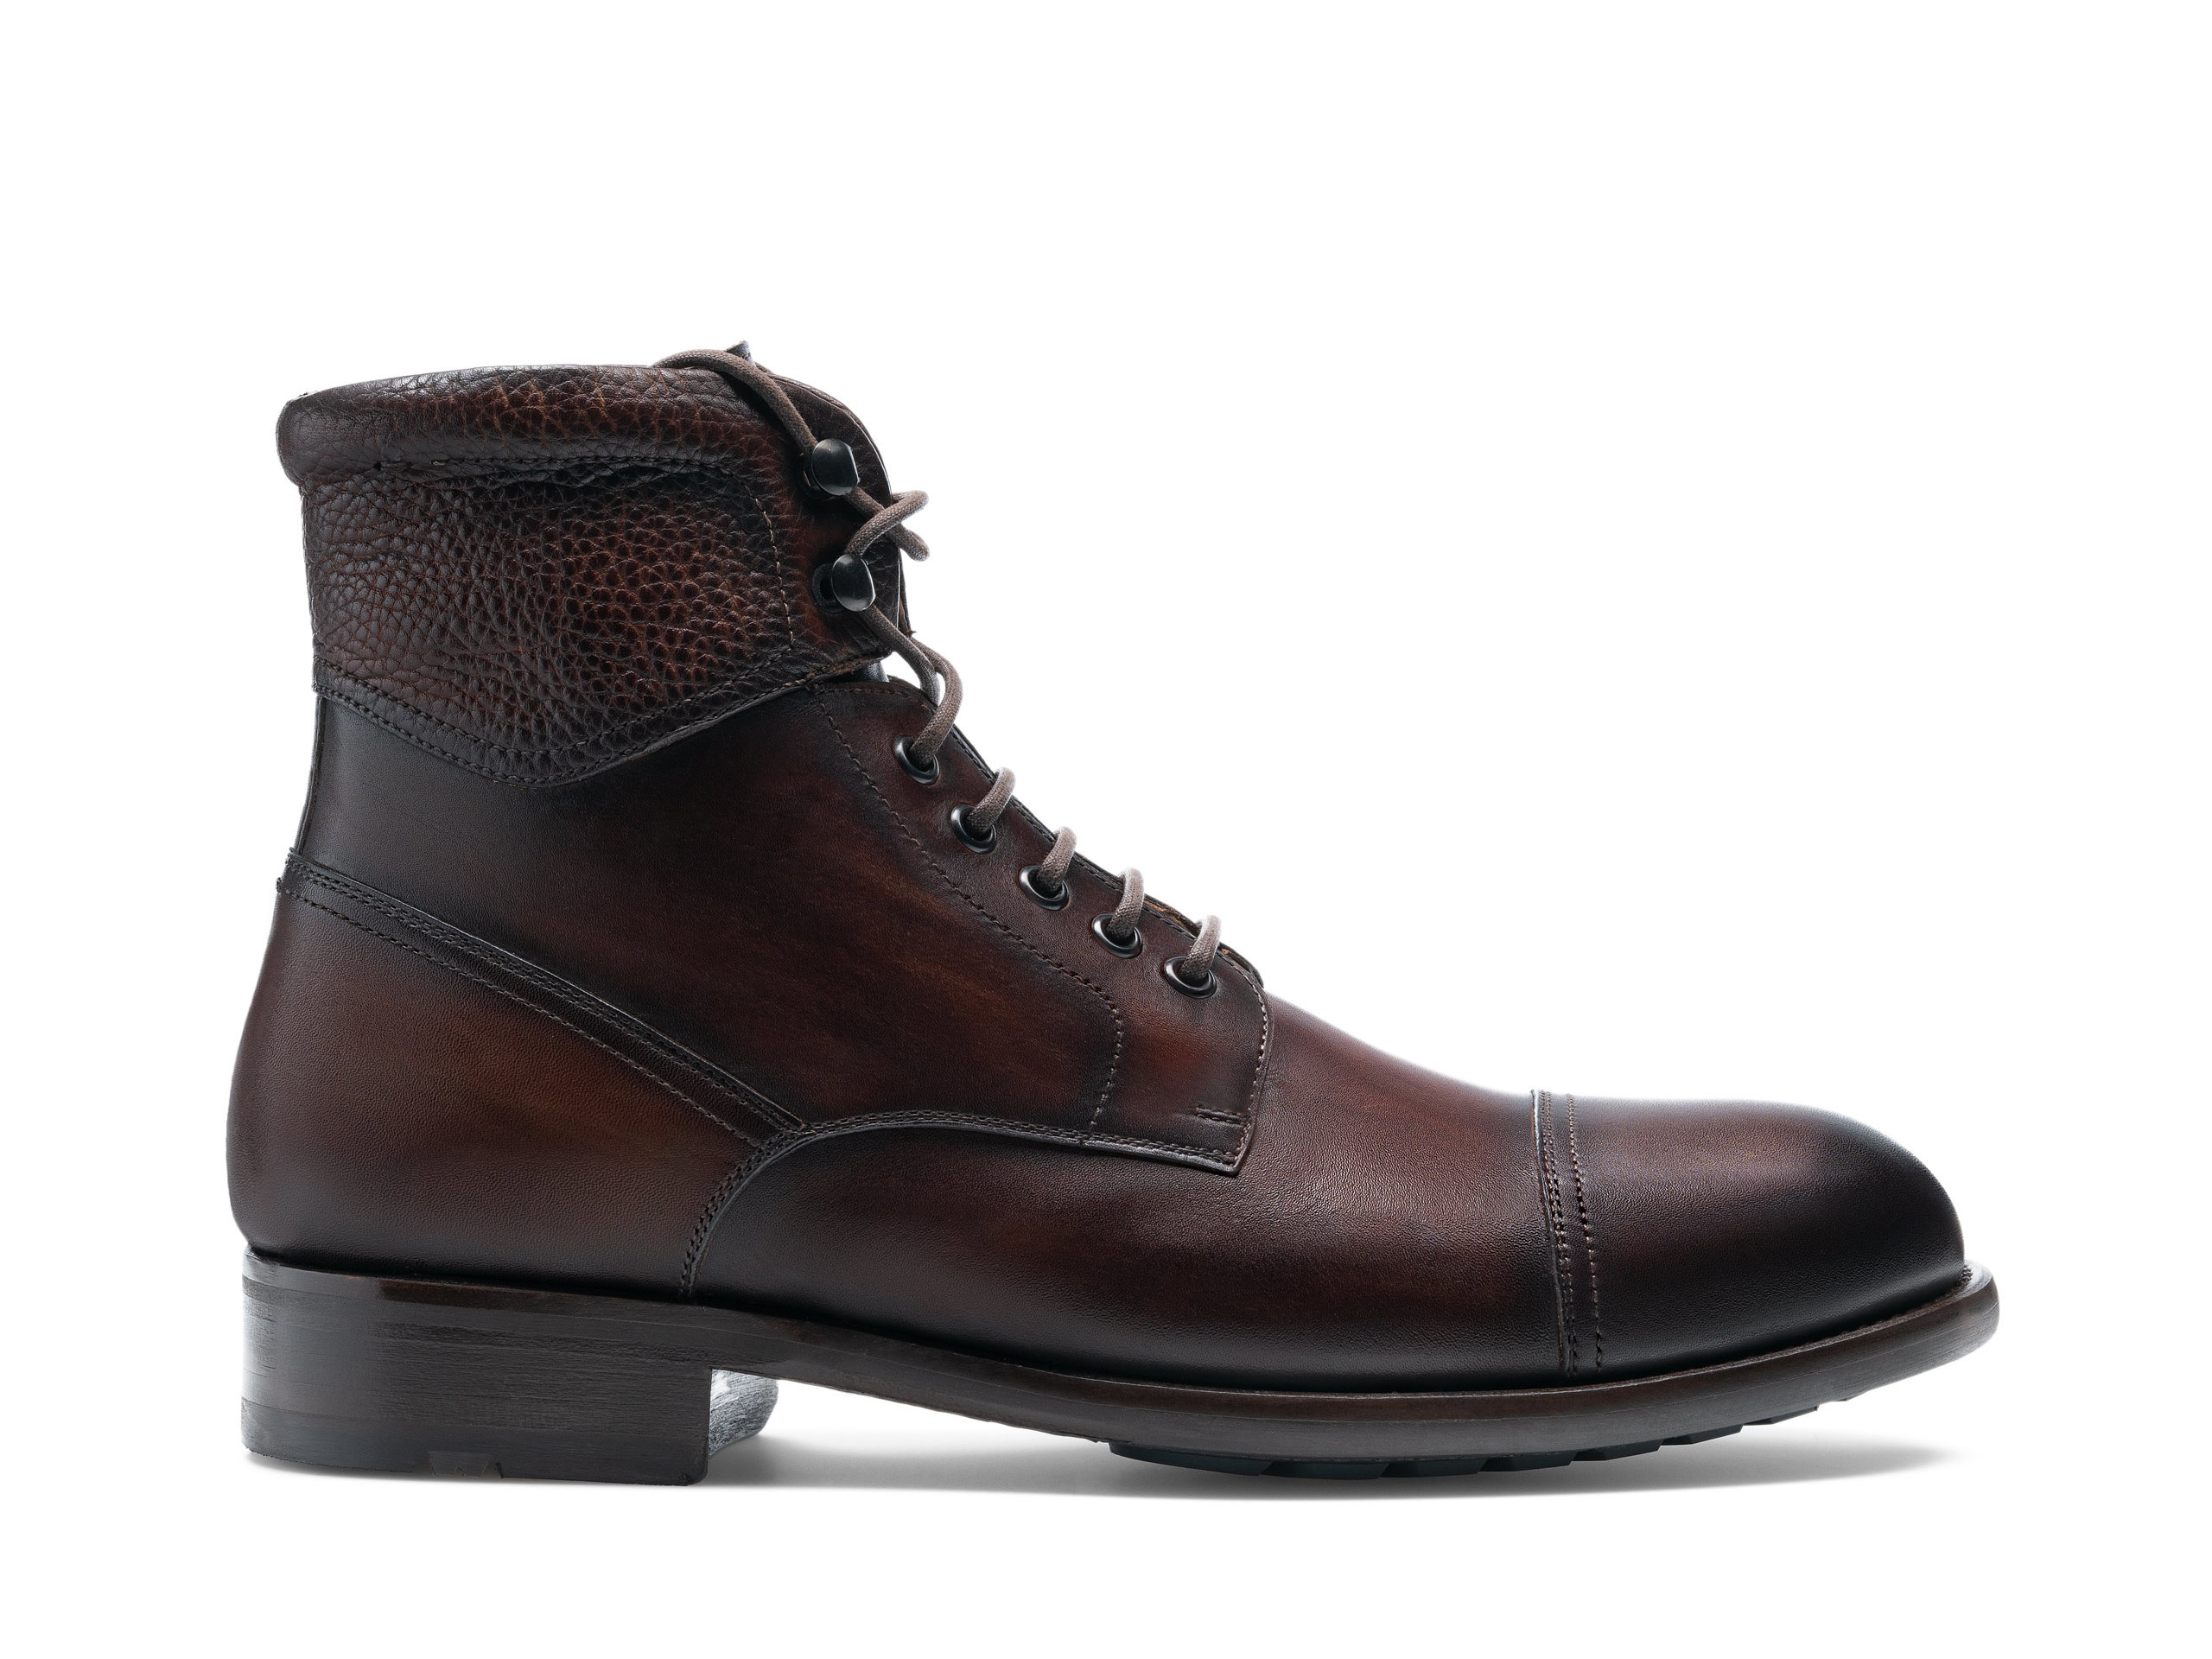 Side view of the Magnanni Peyton II Tabaco Men's Lace Up Boots